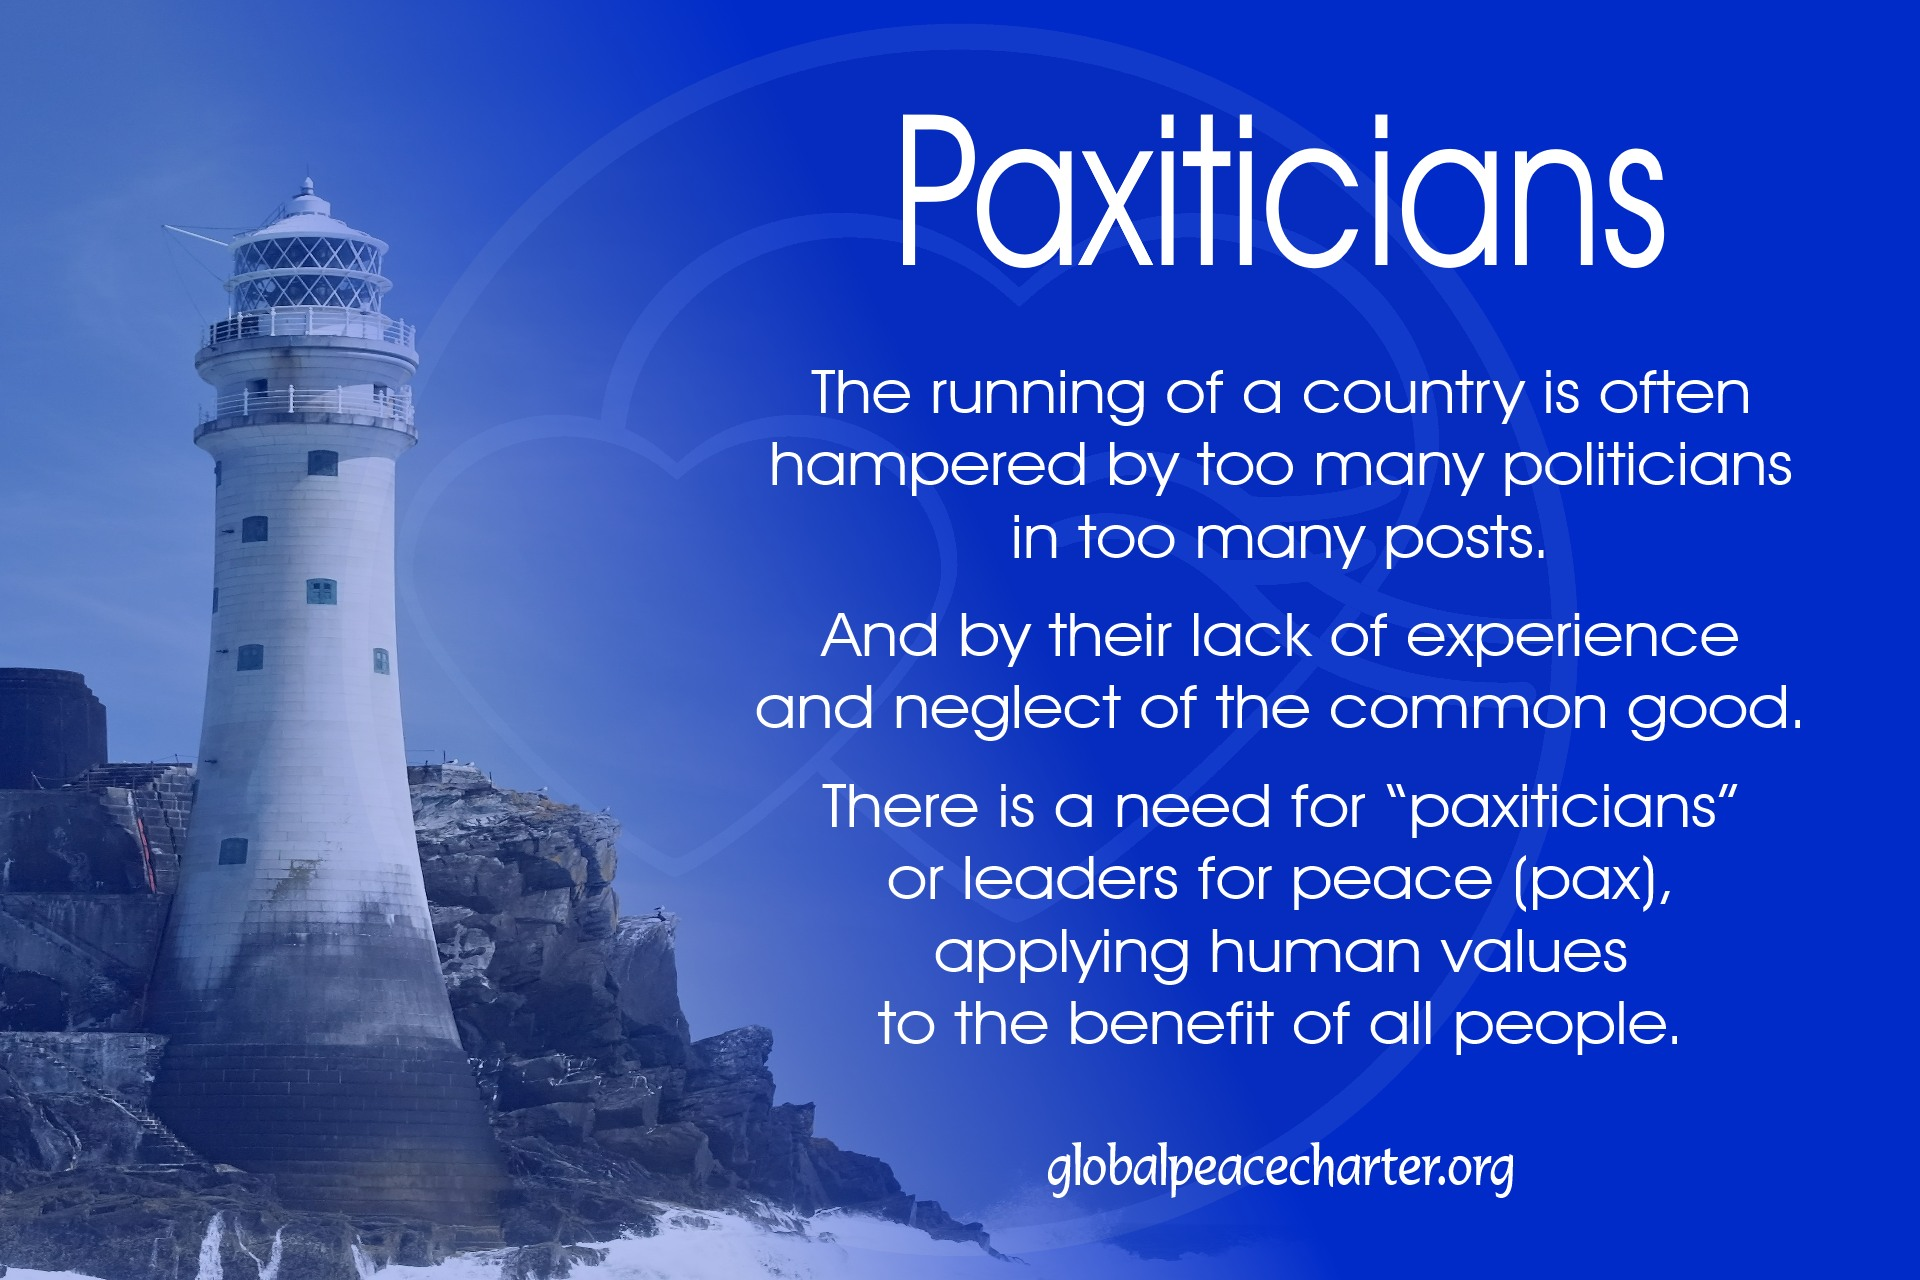 Paxitians - leaders for peace